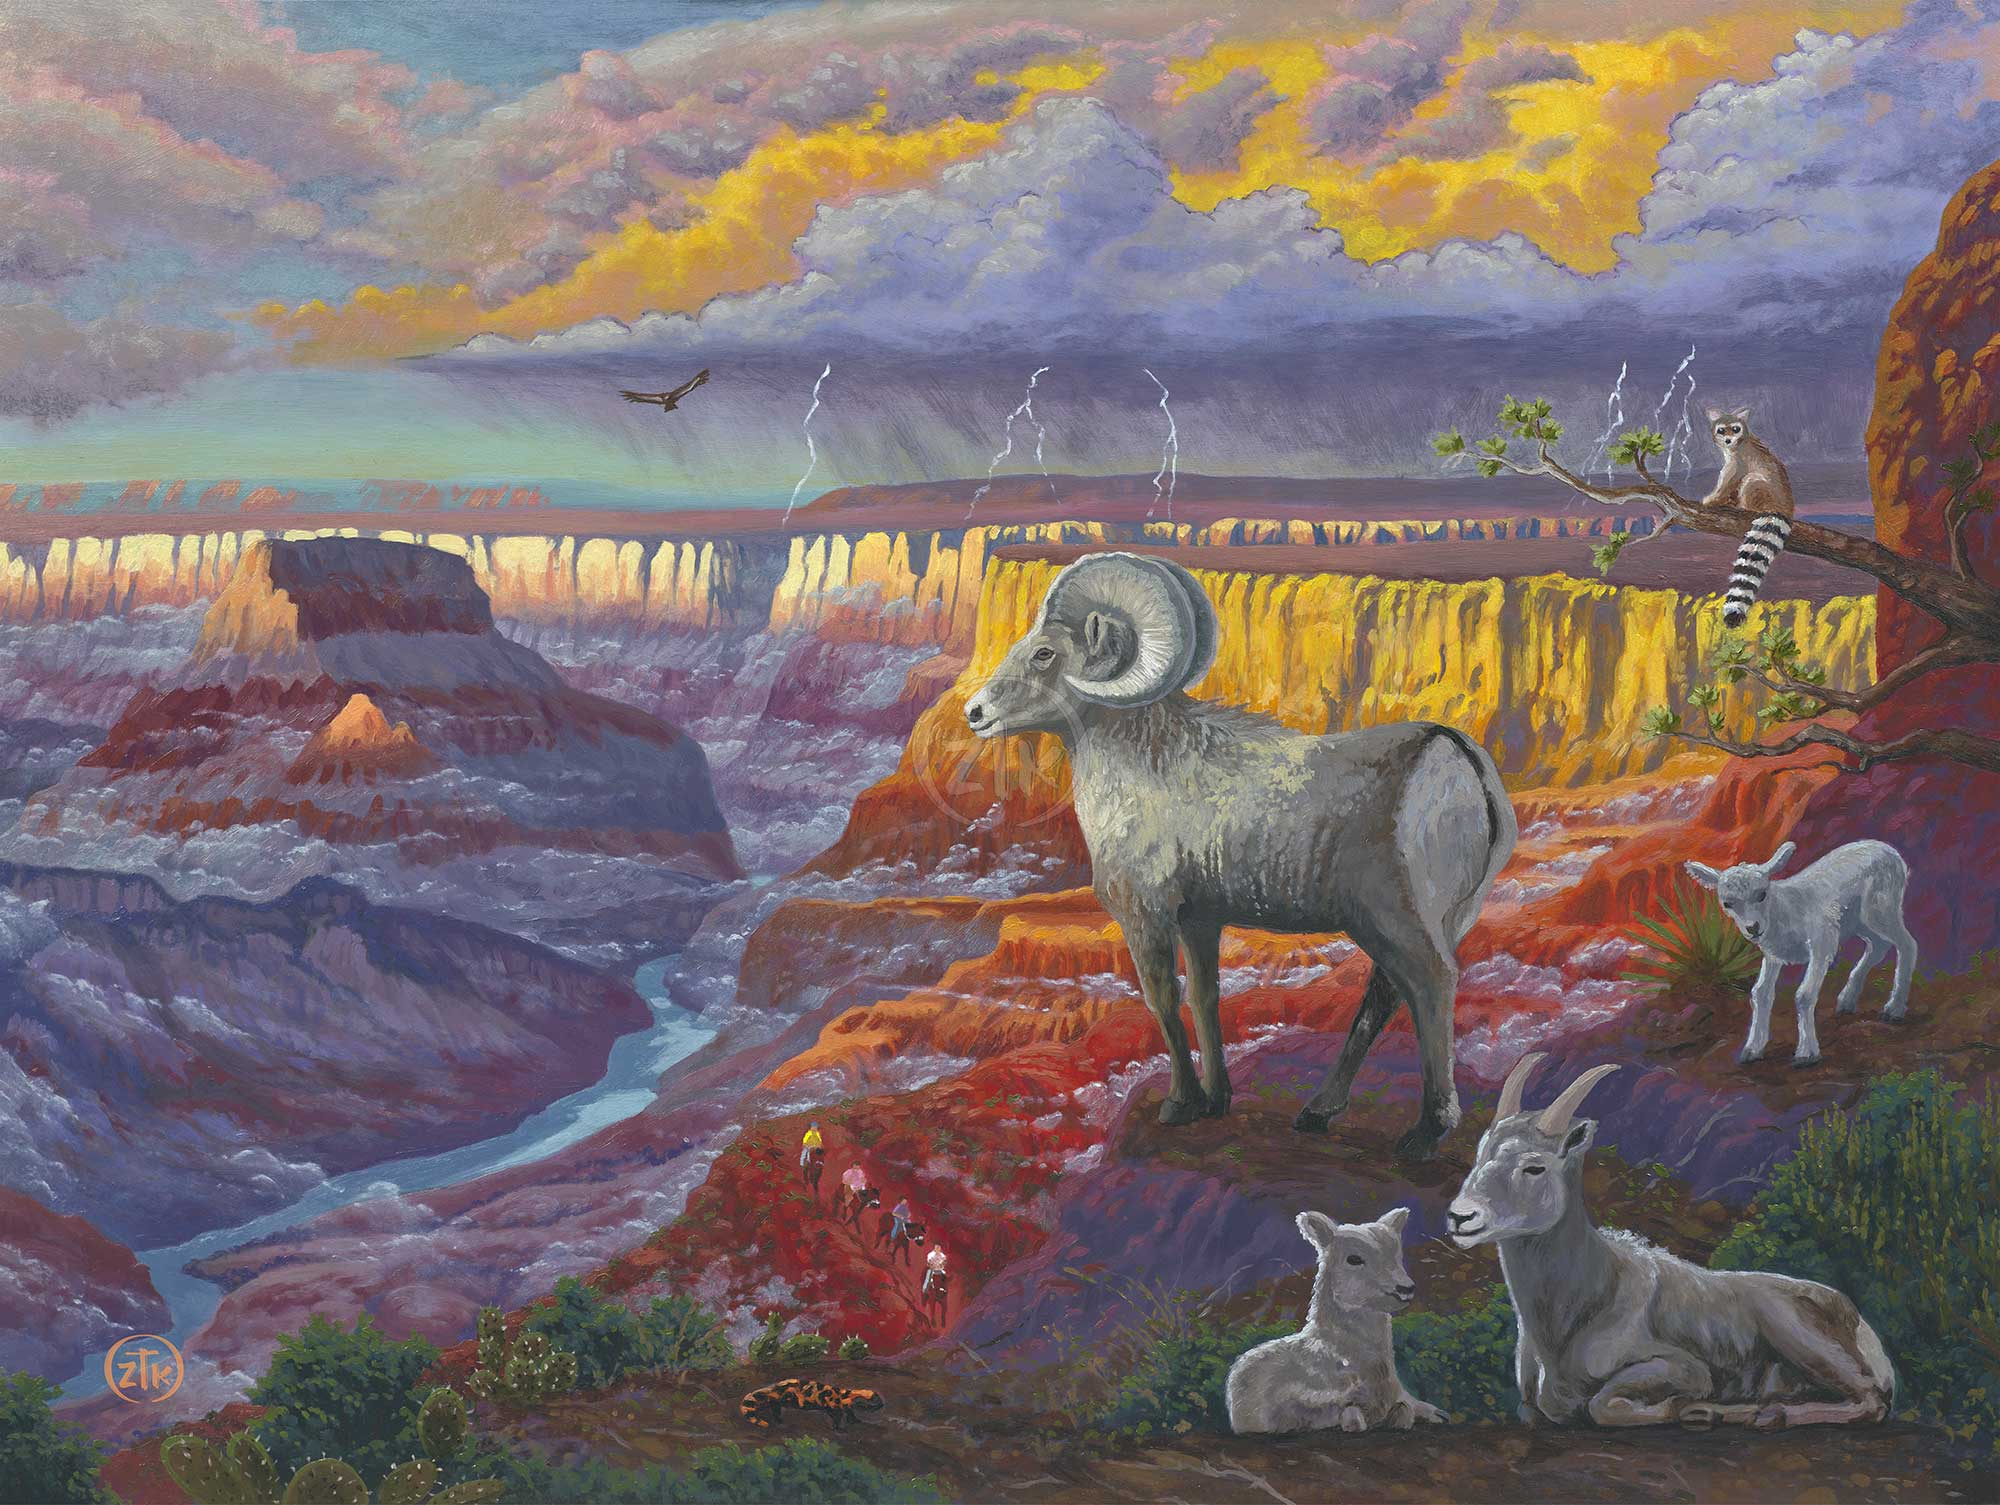 Spirit of the Grand Canyon - Limited Edition Canvas